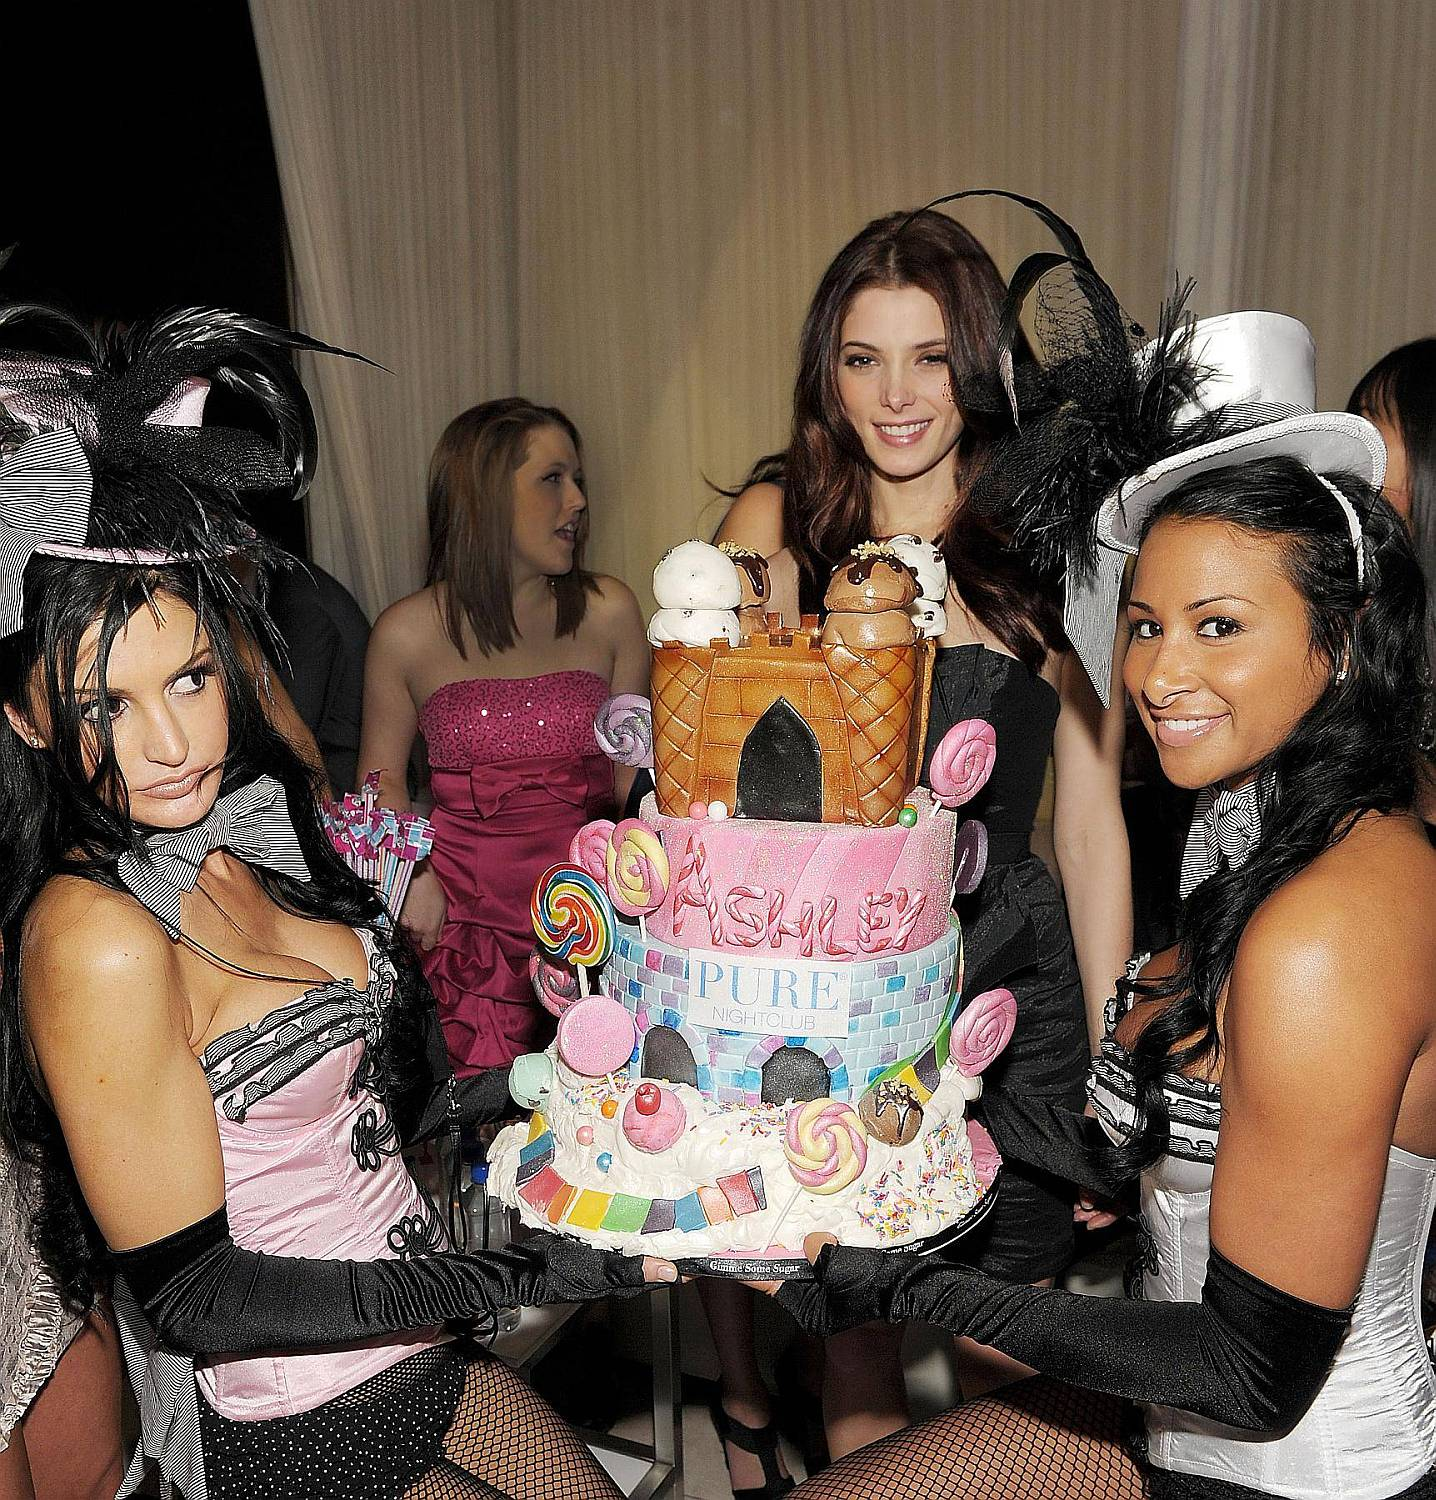 I Love Las Vegas MagazineBLOG Twilights Ashley Greene